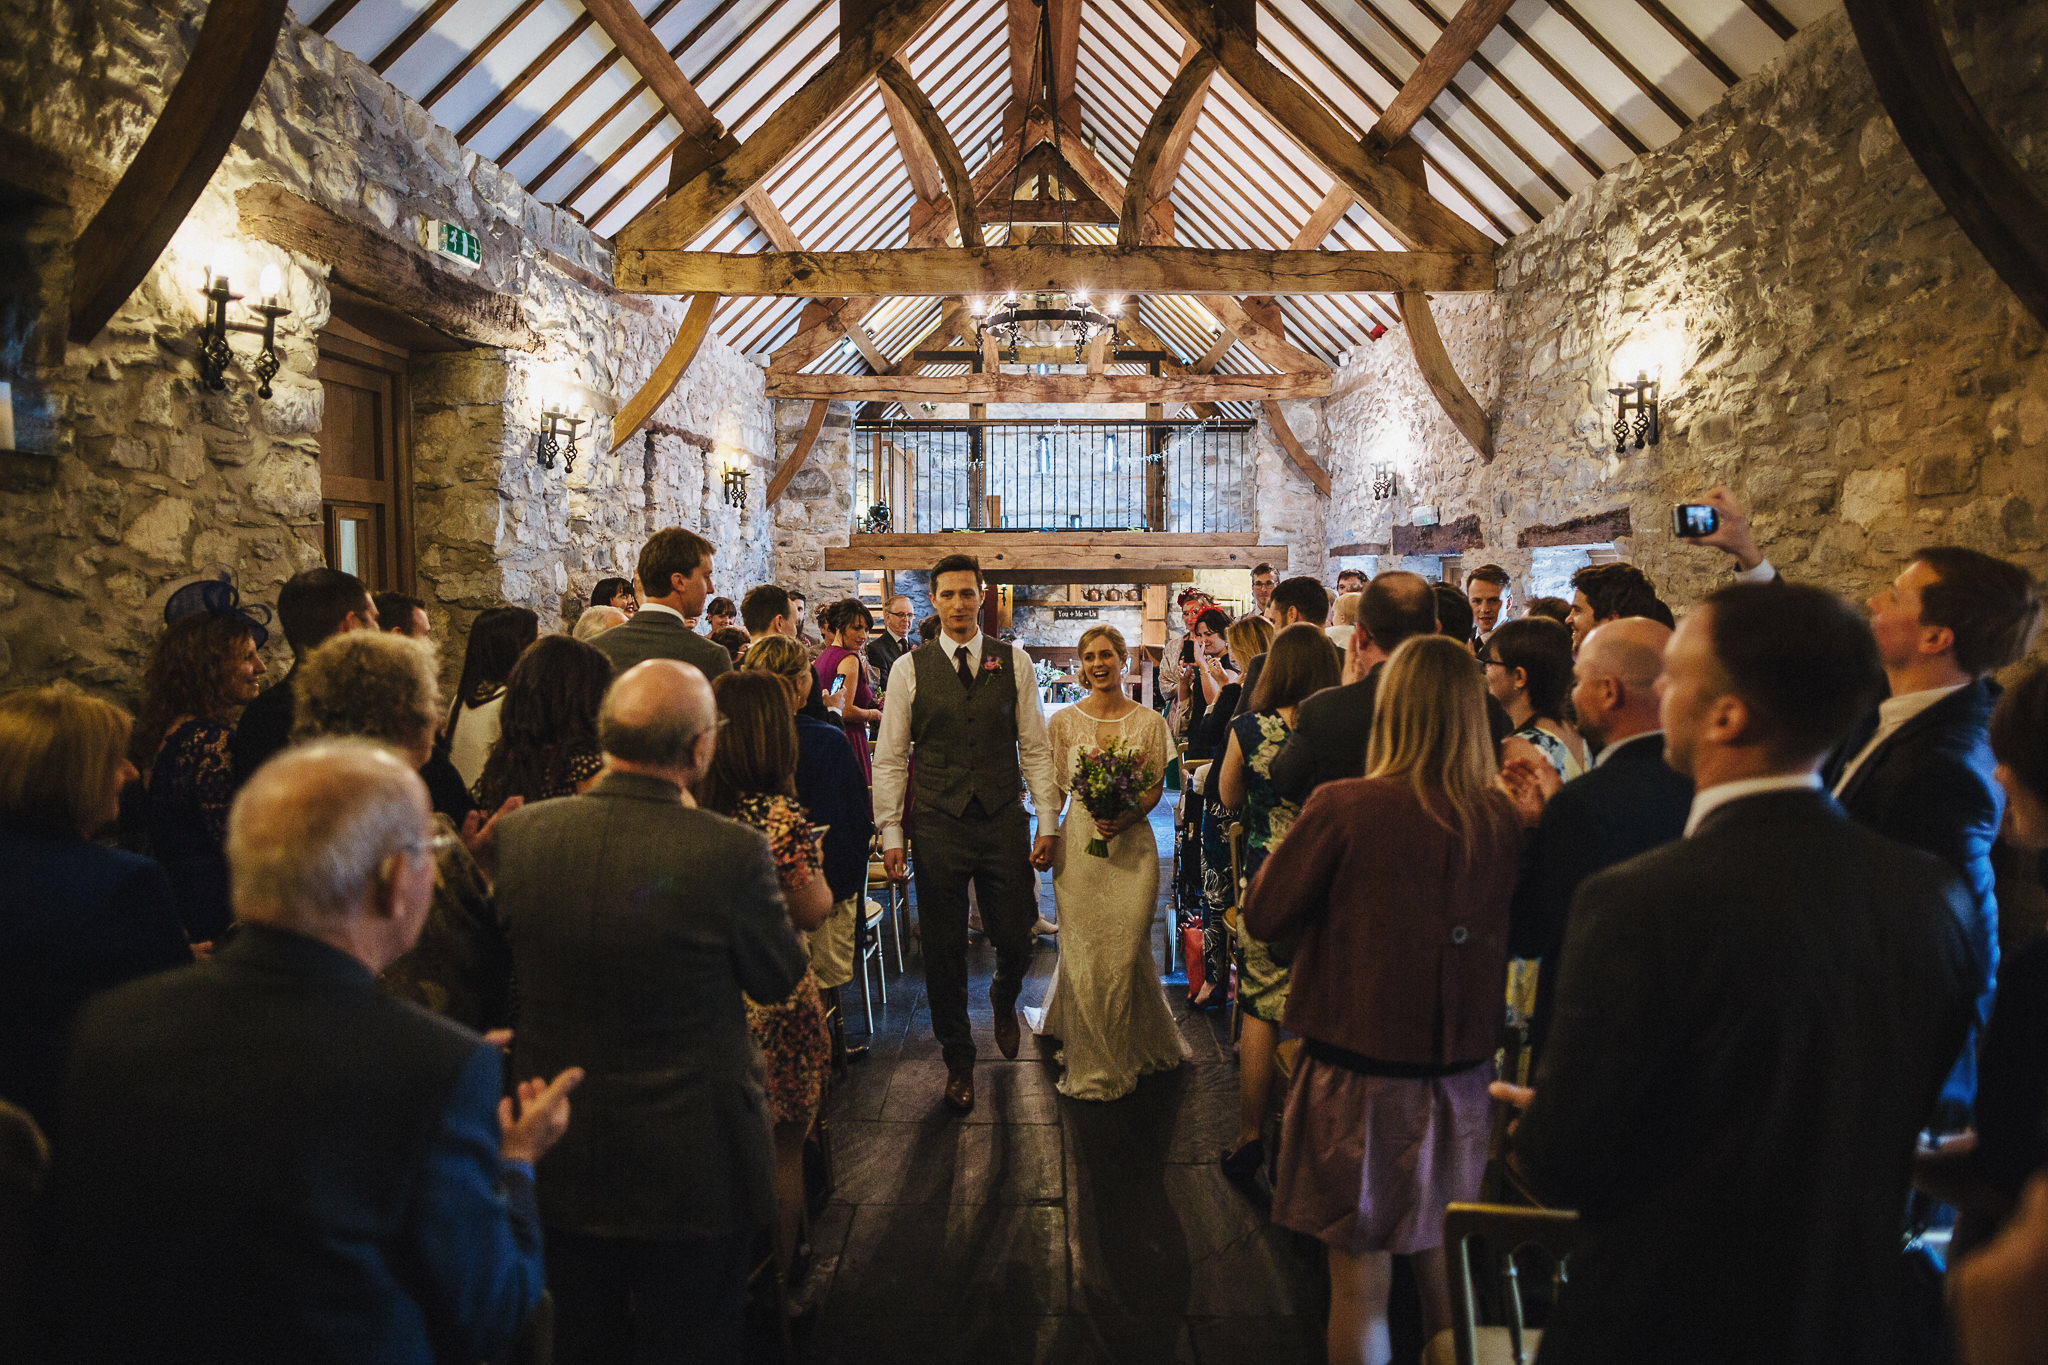 plas-isaf-corwen-north wales wedding-photography-photographer-91036